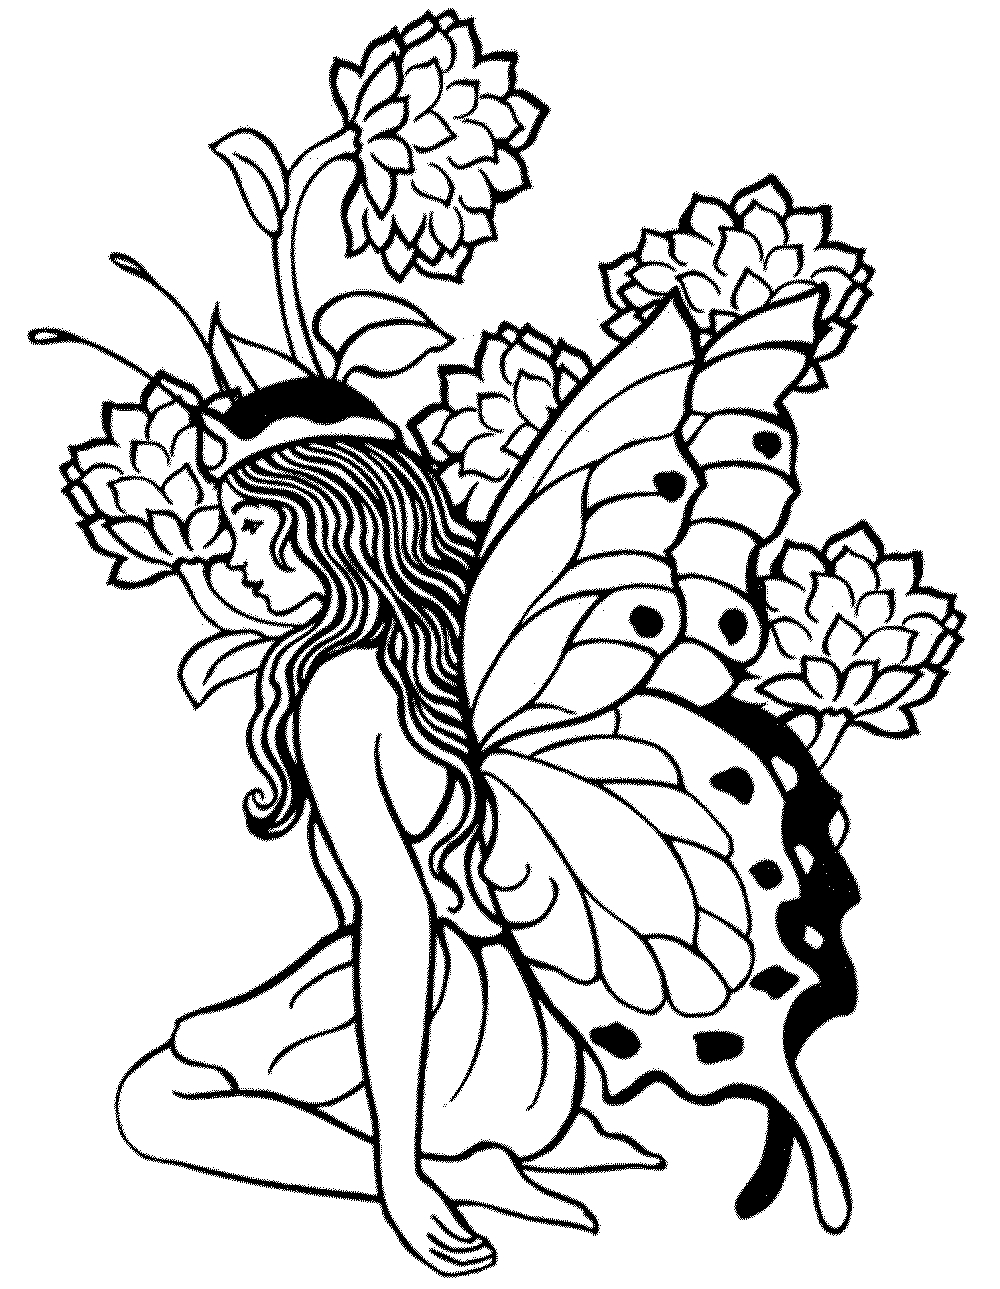 dark fairy coloring pages free printable coloring pages for adults dark fairies dark fairy coloring pages